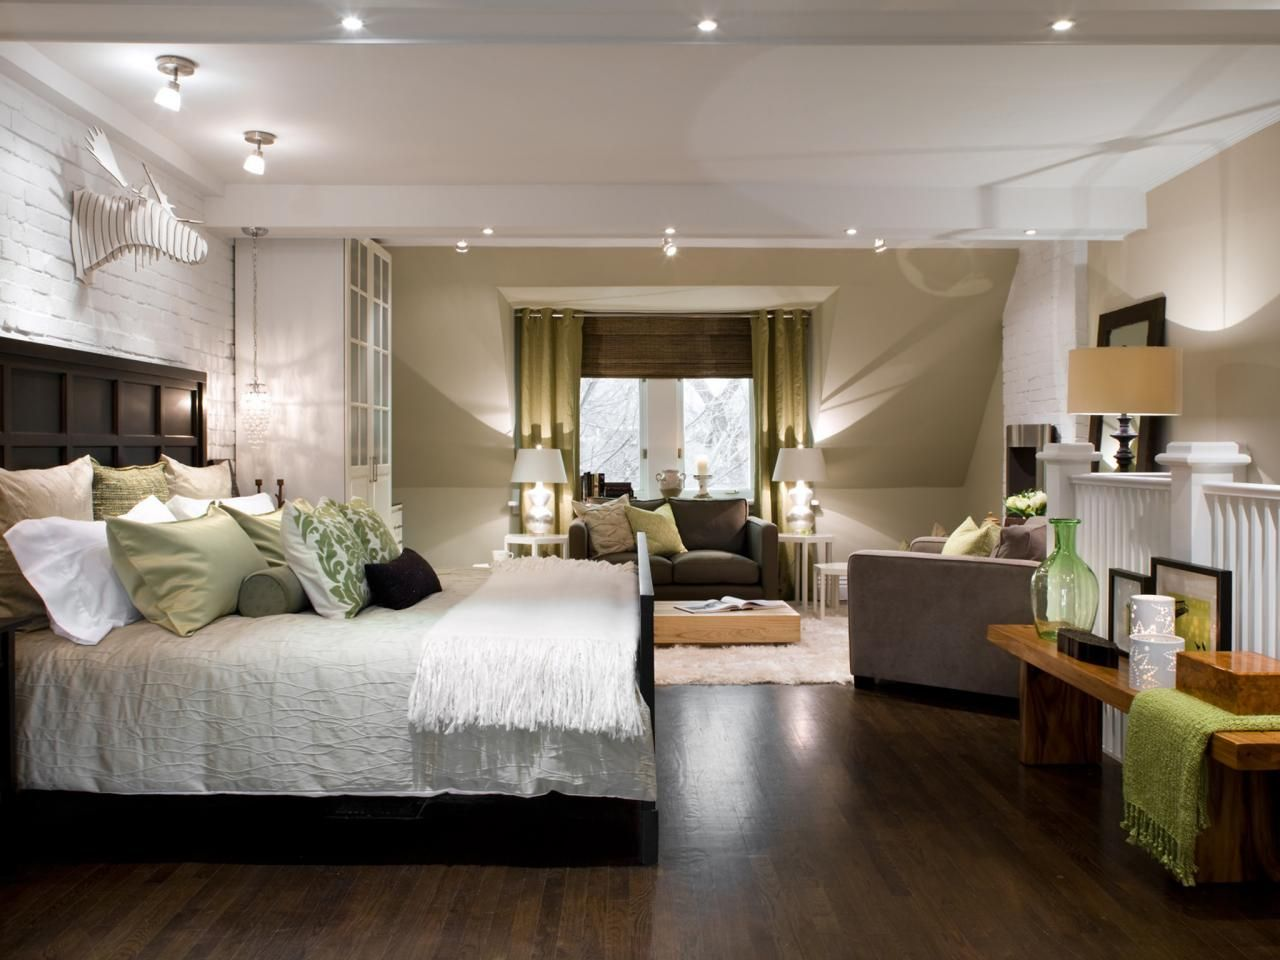 Lighting For Bedroom  Interior House Paint Ideas Check More At Stunning Paint Design For Bedroom Decorating Inspiration